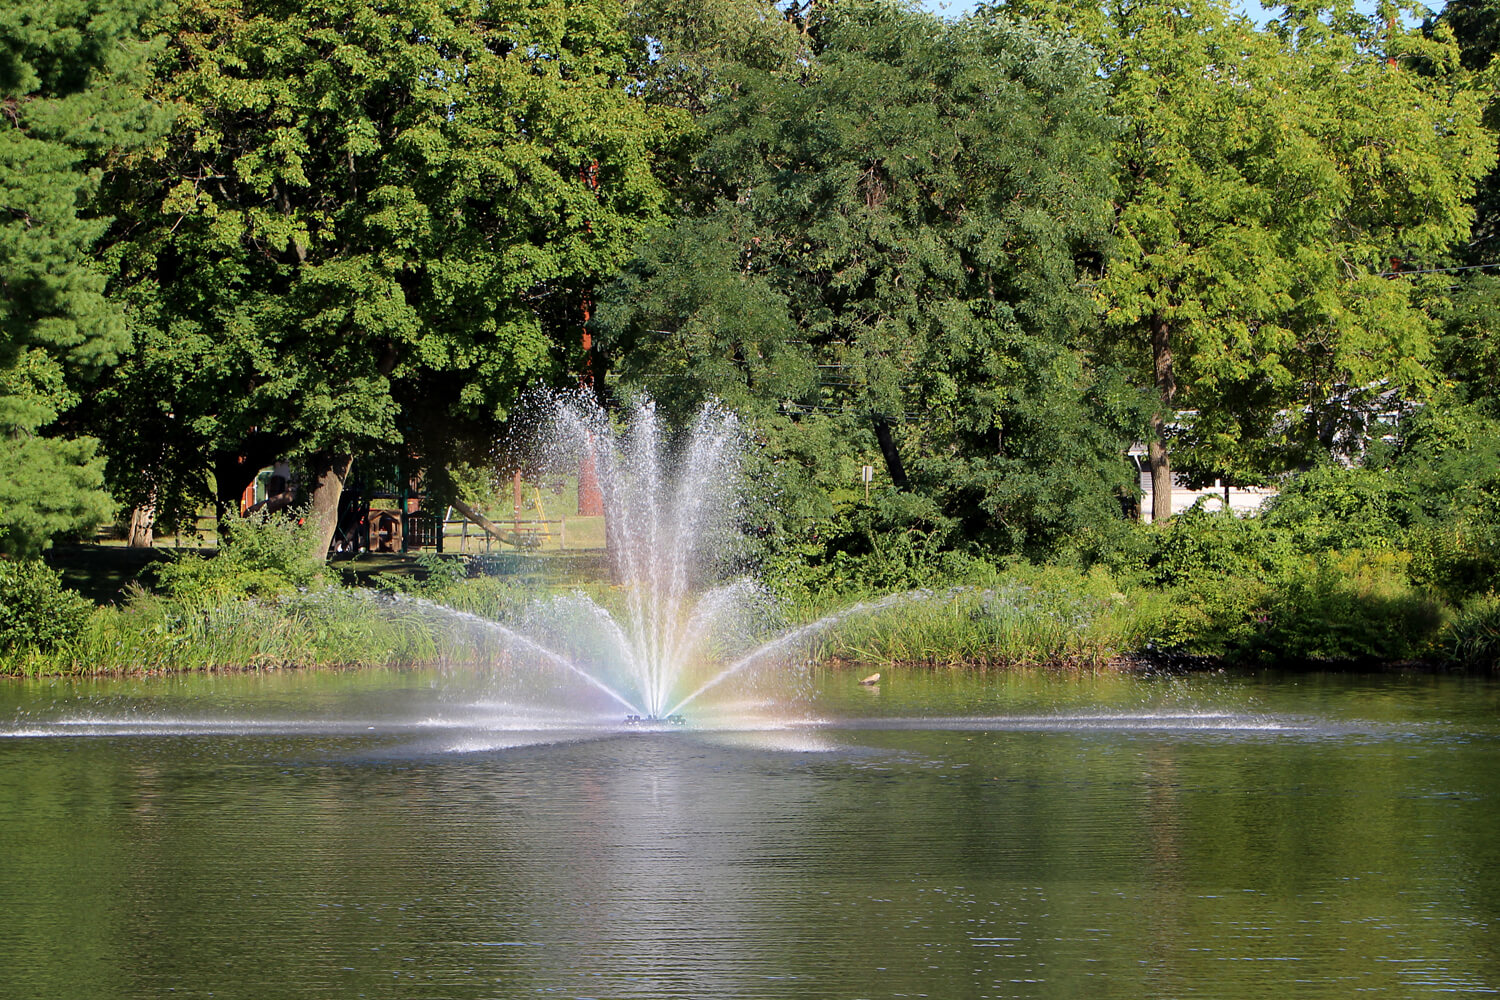 One of Otterbine's Genesis Aerating Fountains at a park